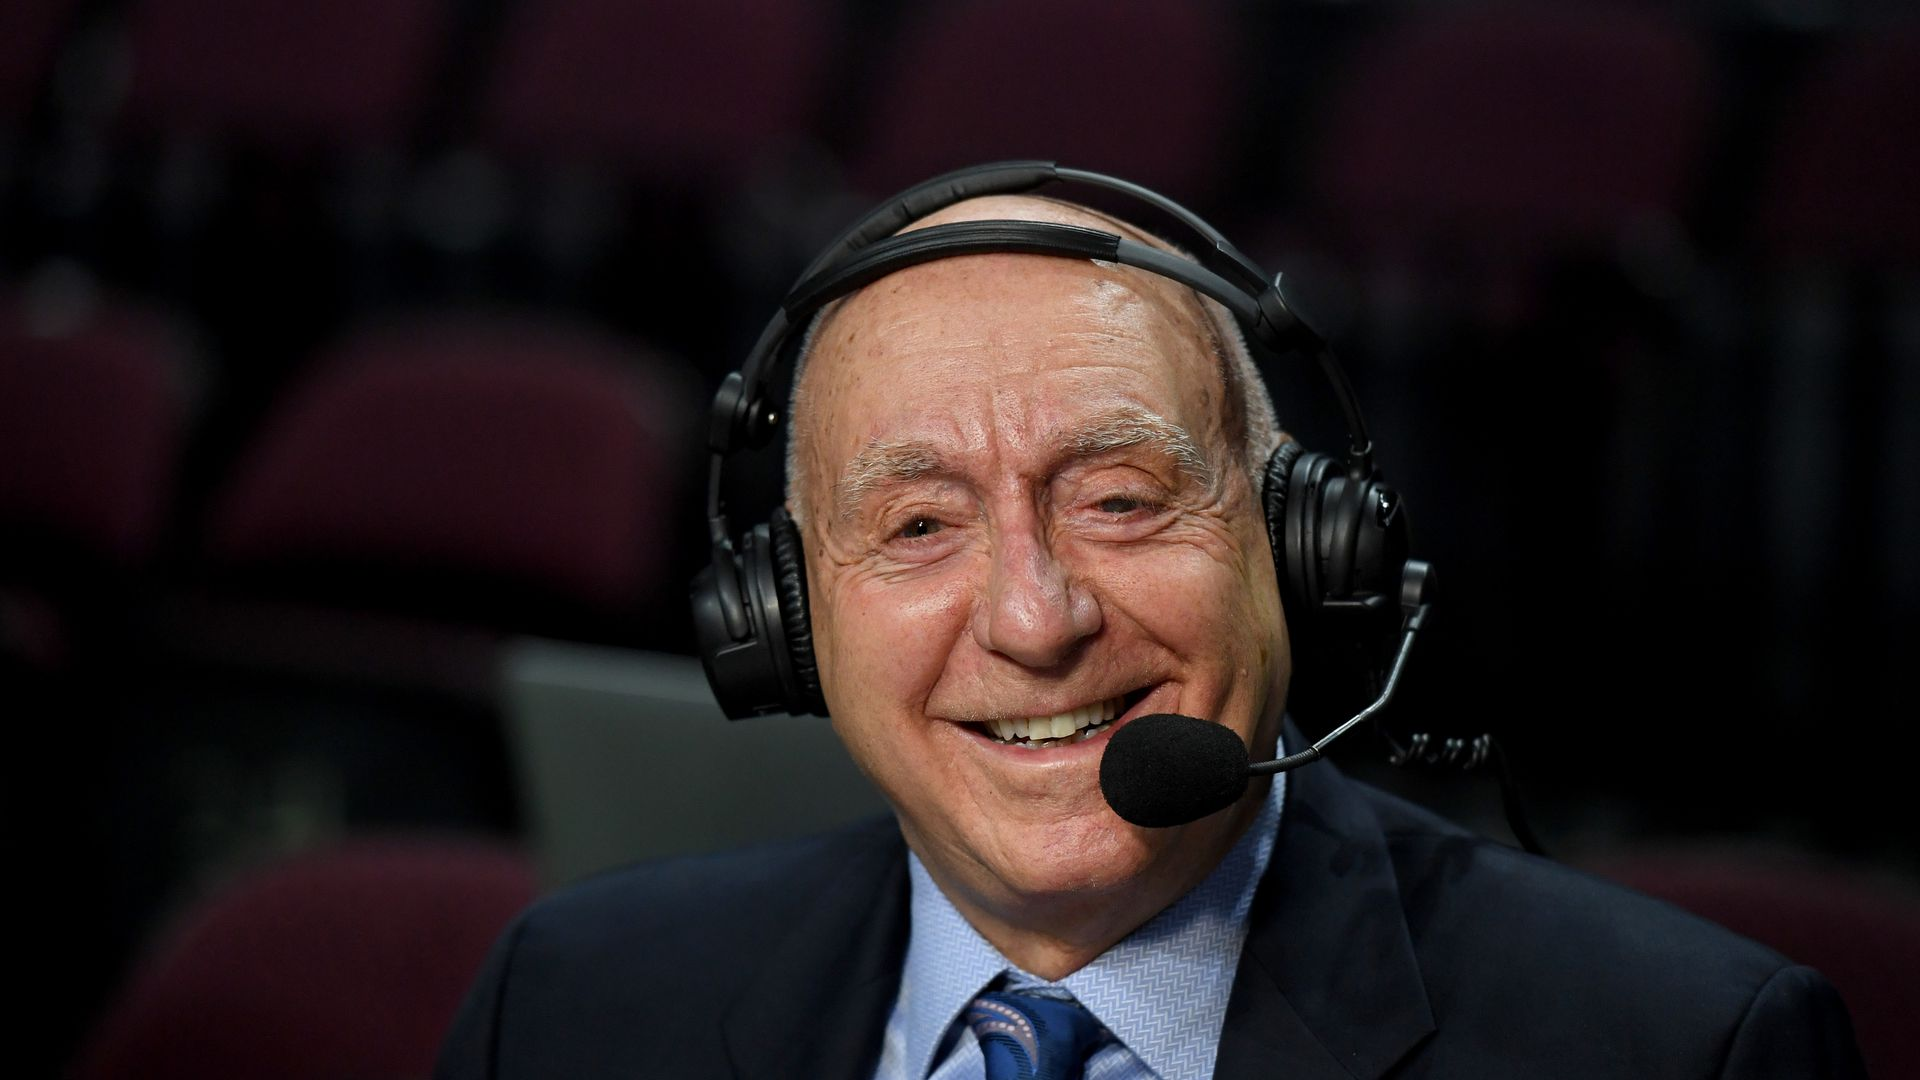 Dick Vitale sits with a microphone in front of his face smiling.